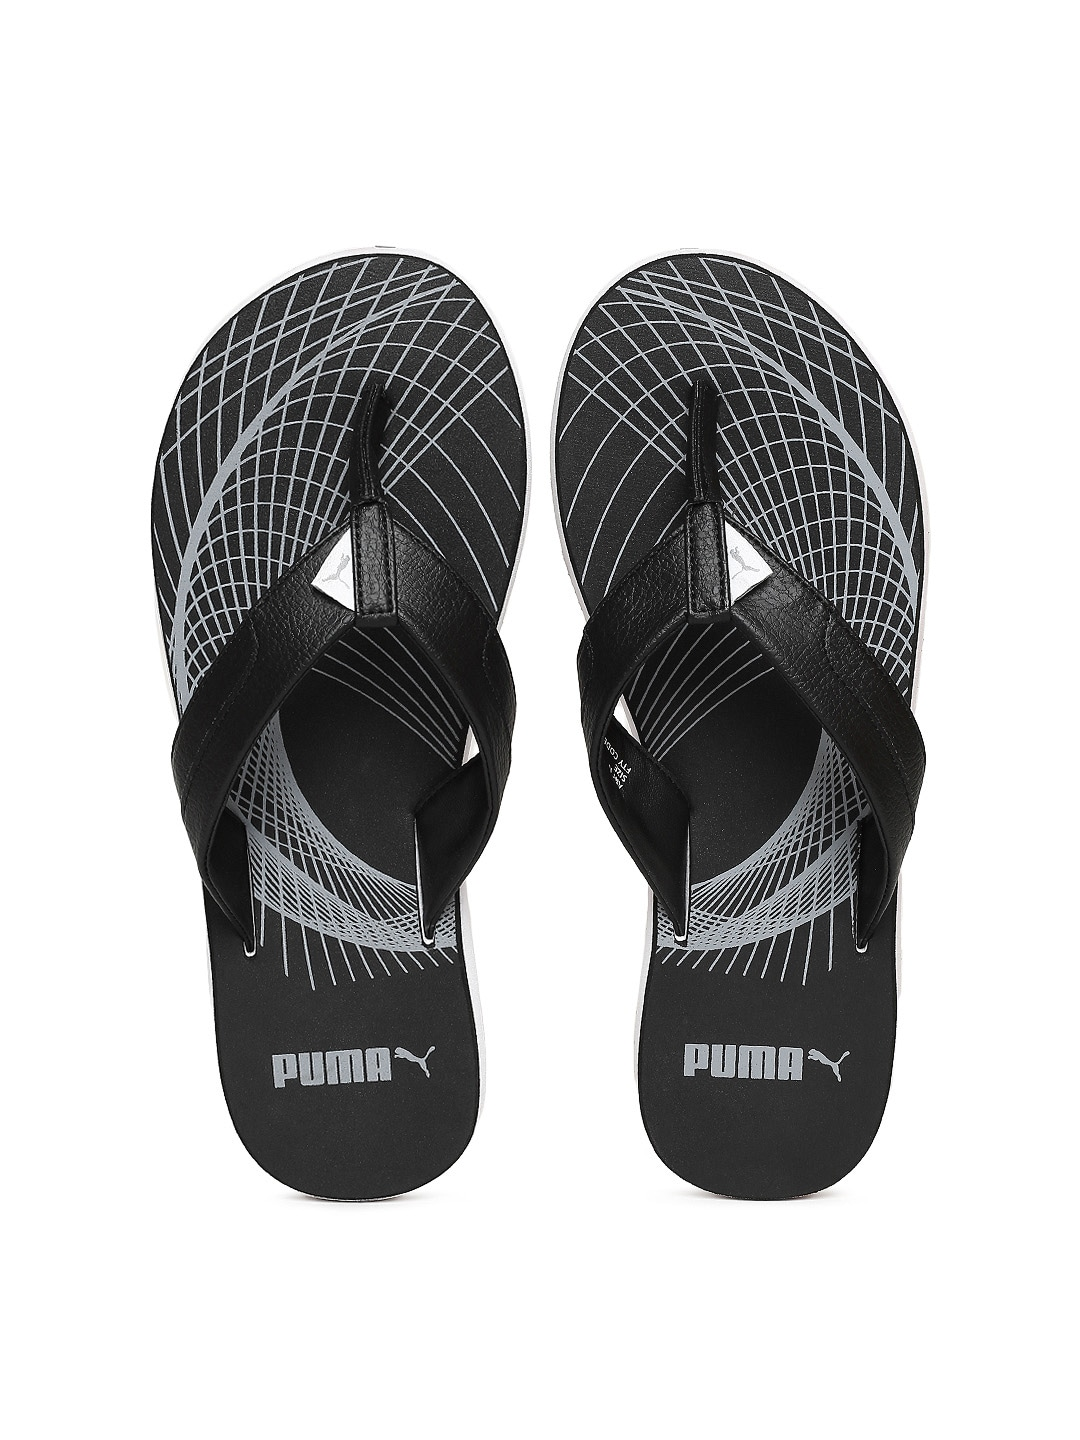 7c41398bb1e Puma Slippers - Buy Puma Slippers Online at Best Price